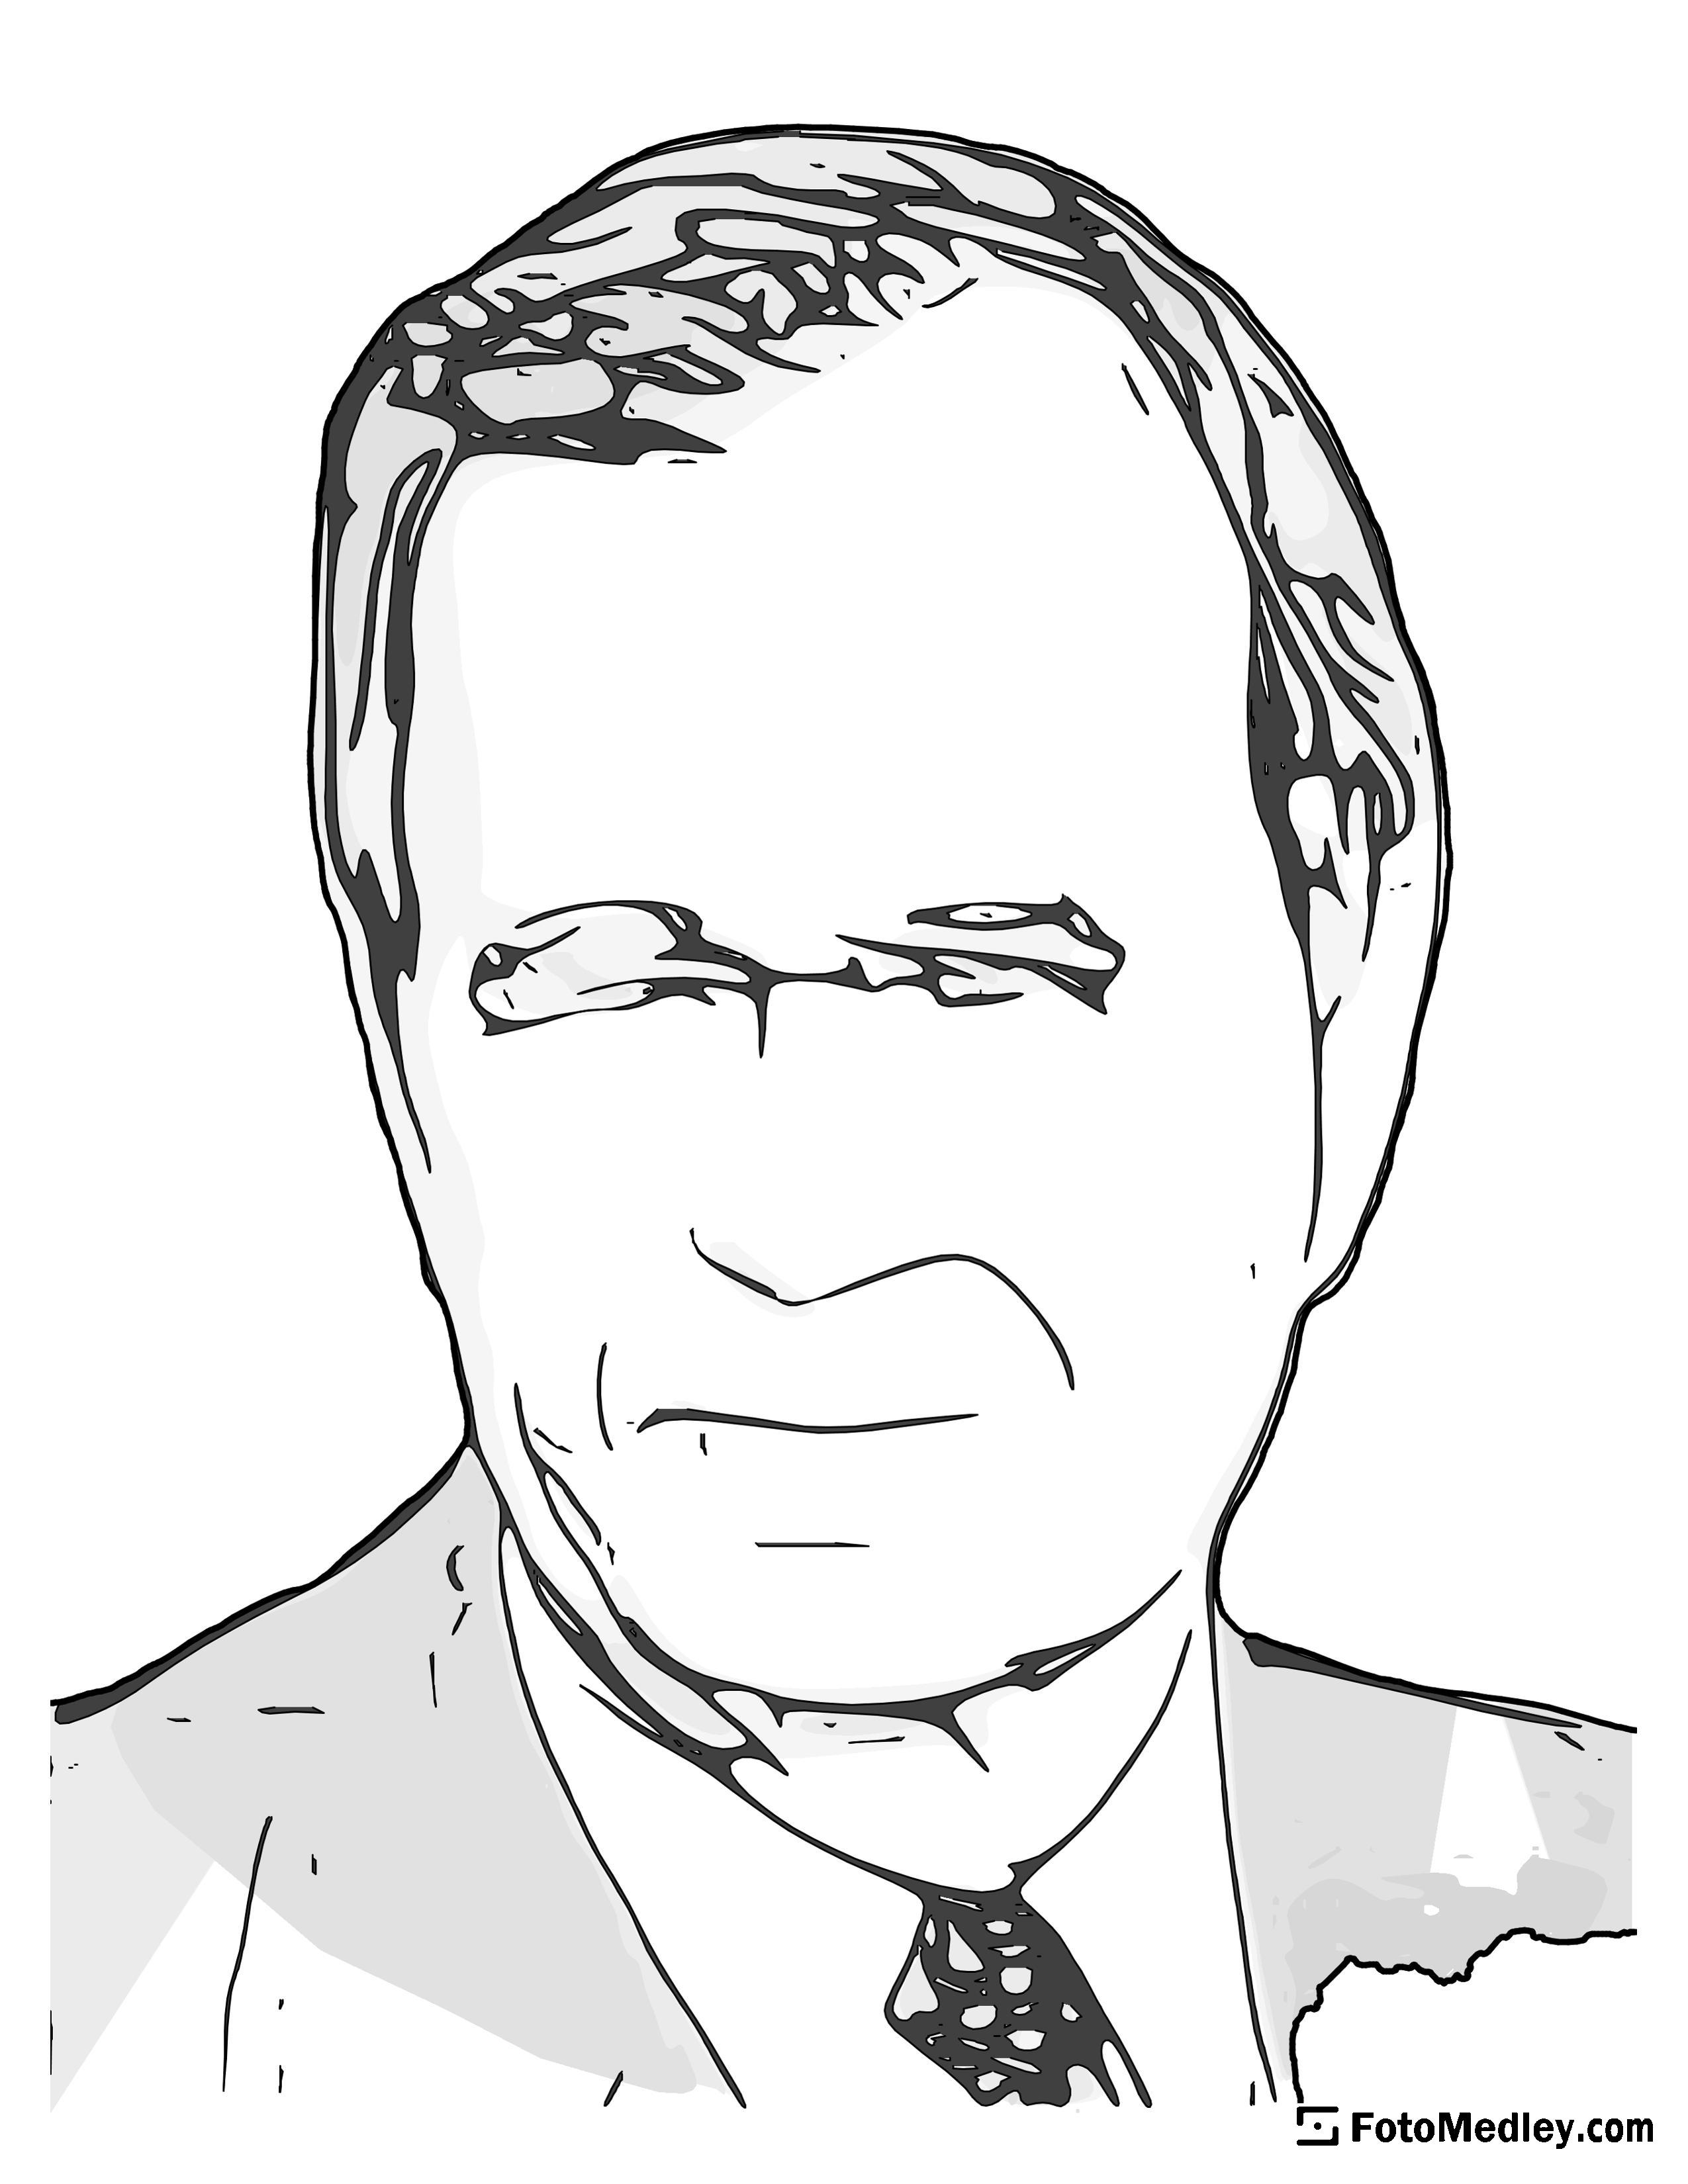 A cartoon style coloring sketch of George H. W. Bush, 41st President of the United States.